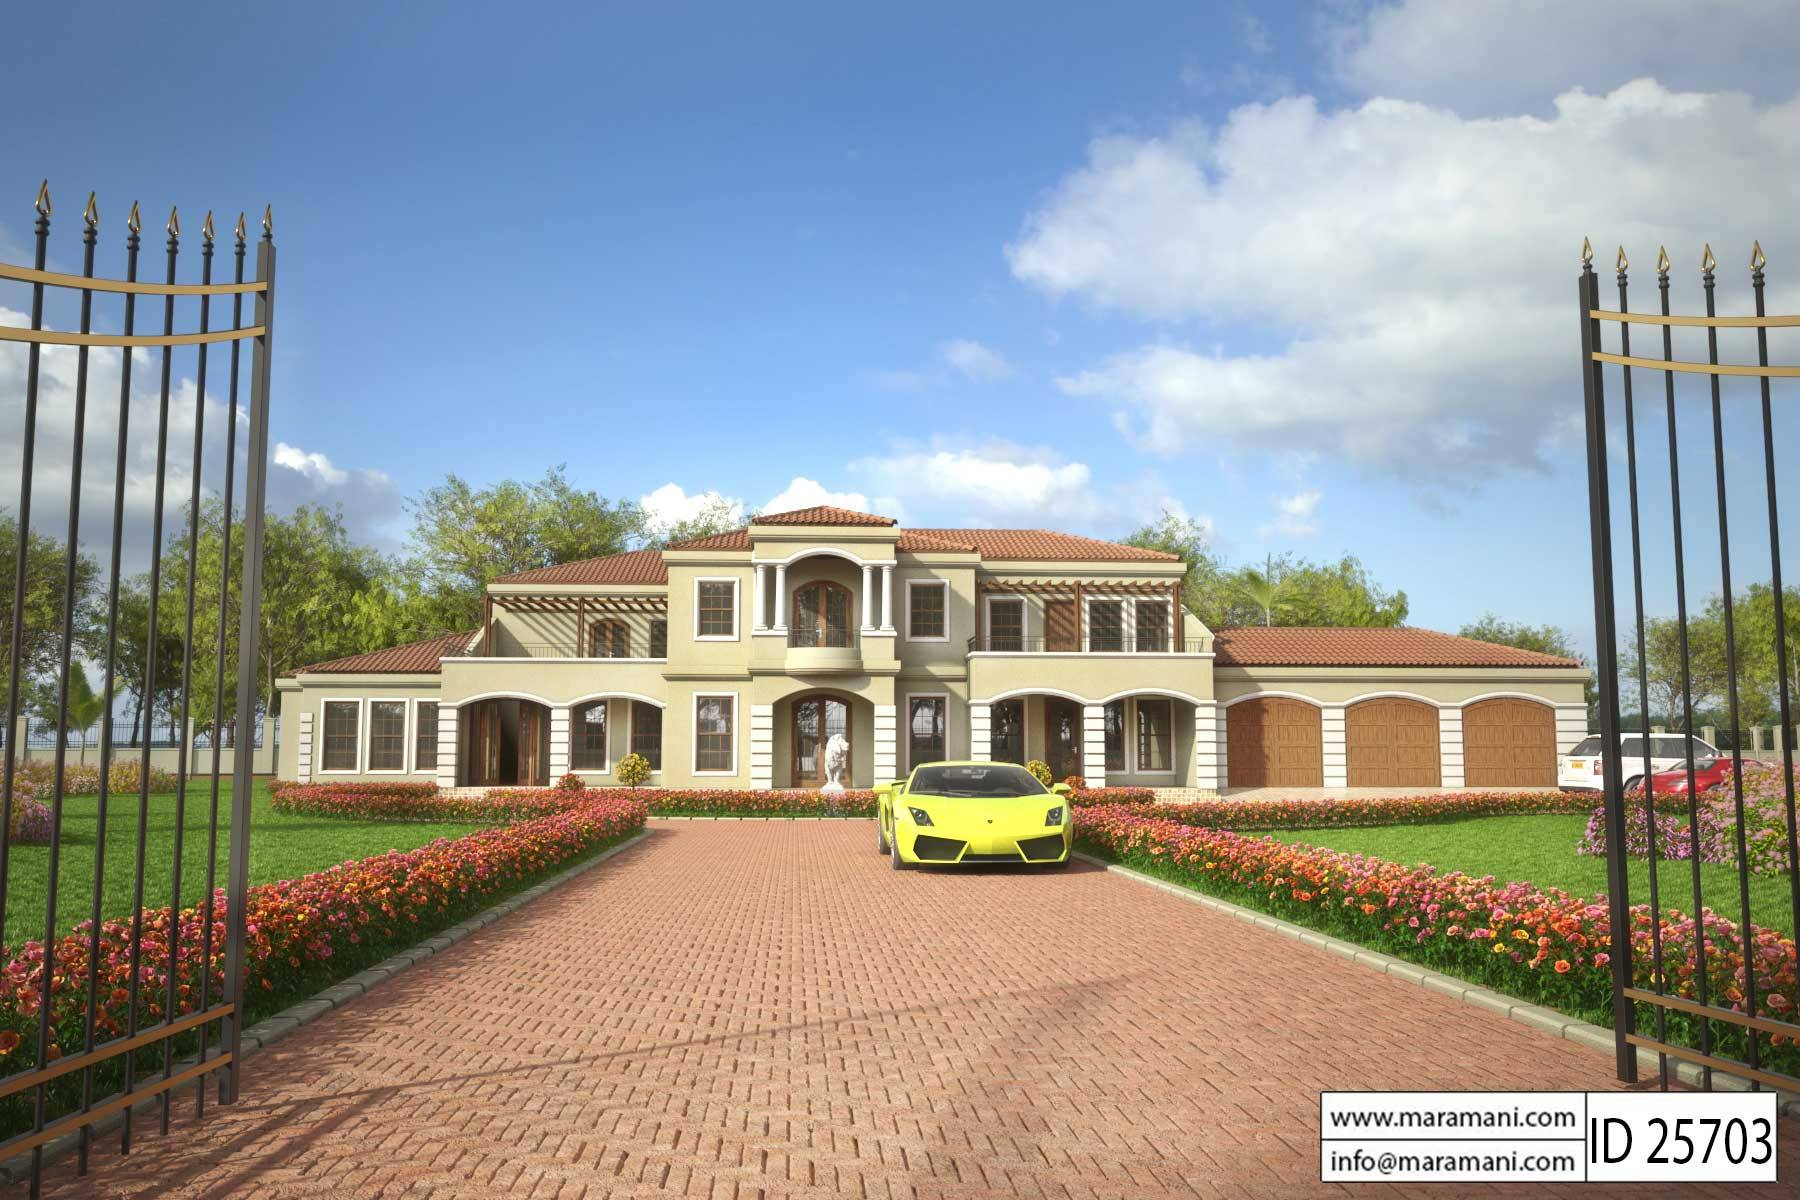 5 Bedroom House Plans Designs for Africa Maramanicom